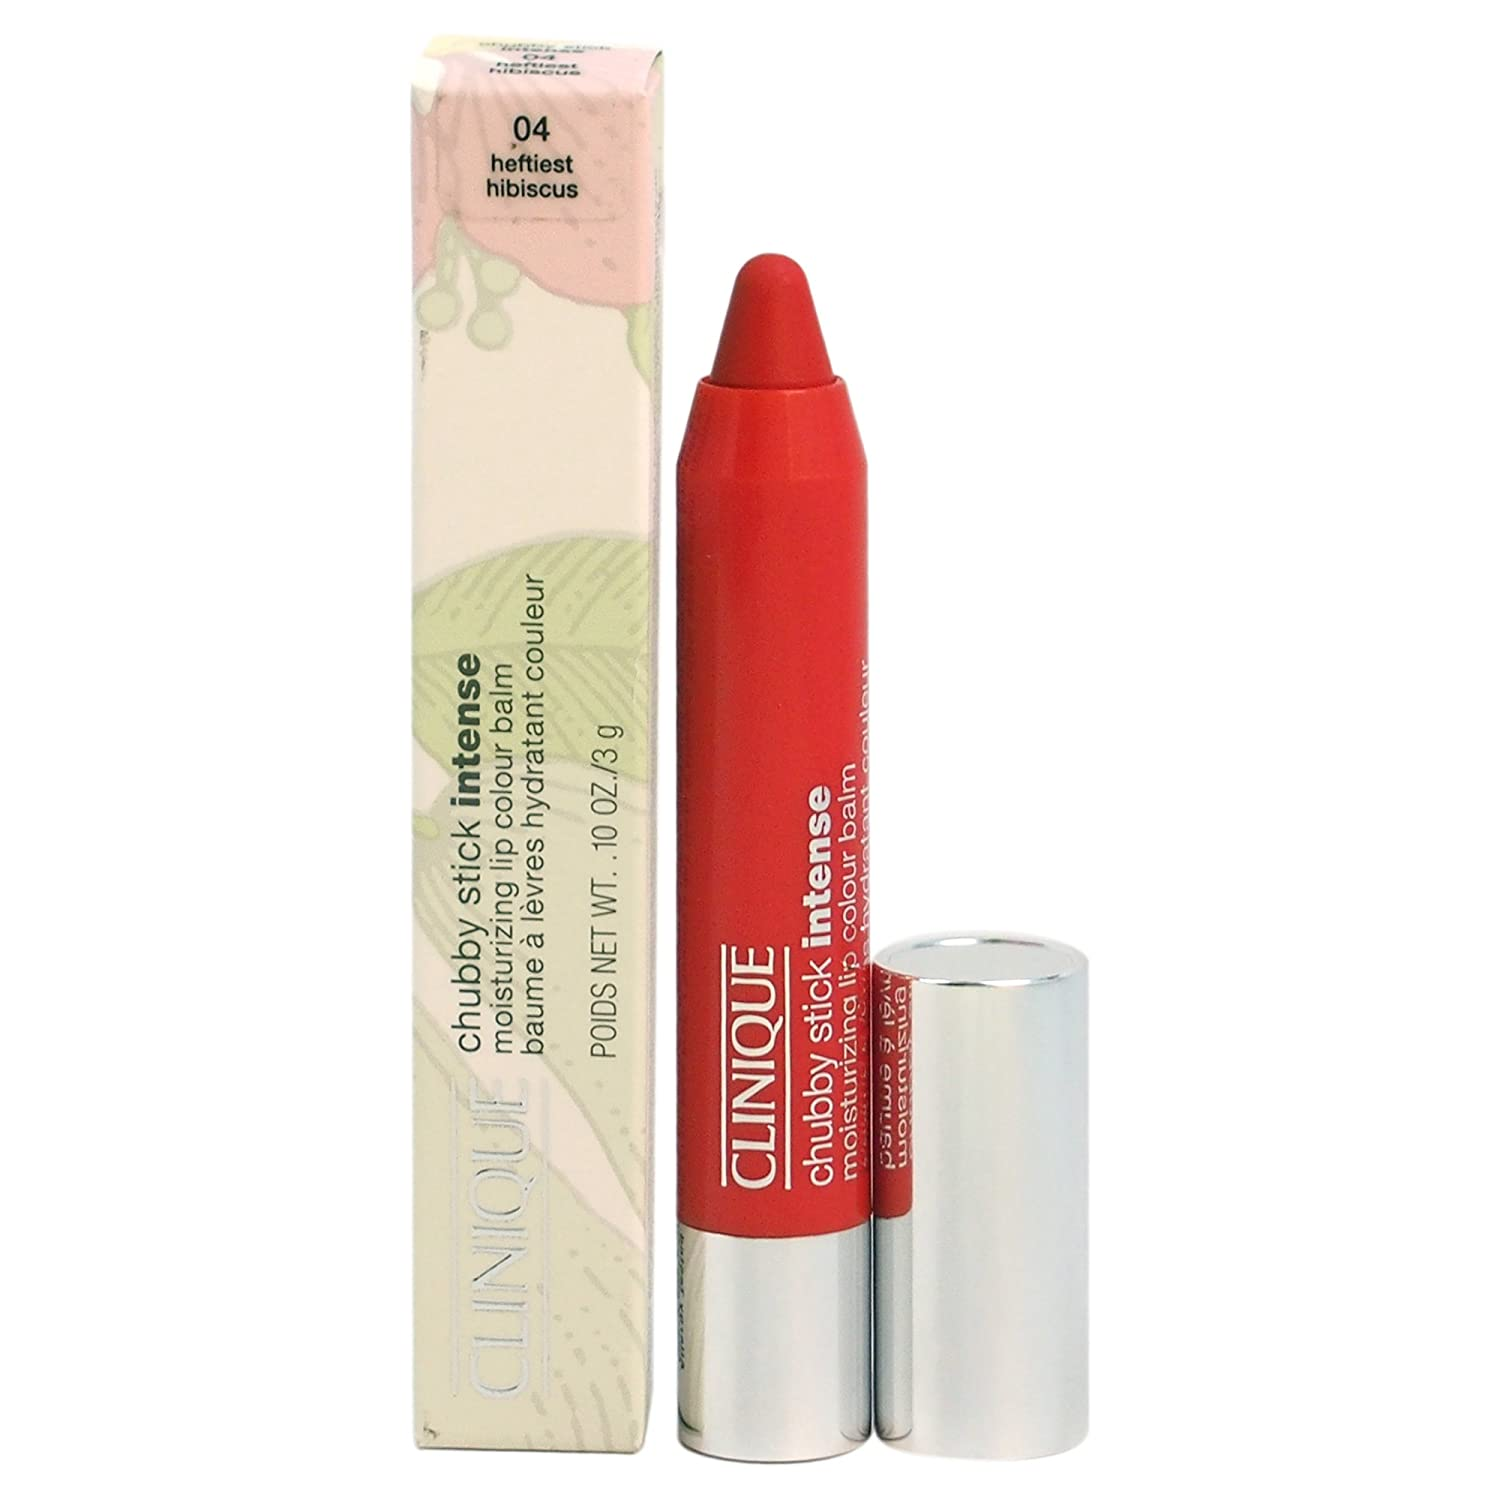 Clinique Chubby Stick Intense Moisturizing Lip Balm - 06 - Roomiest Rose 3g 0020714602086 CLI00101_-3gr